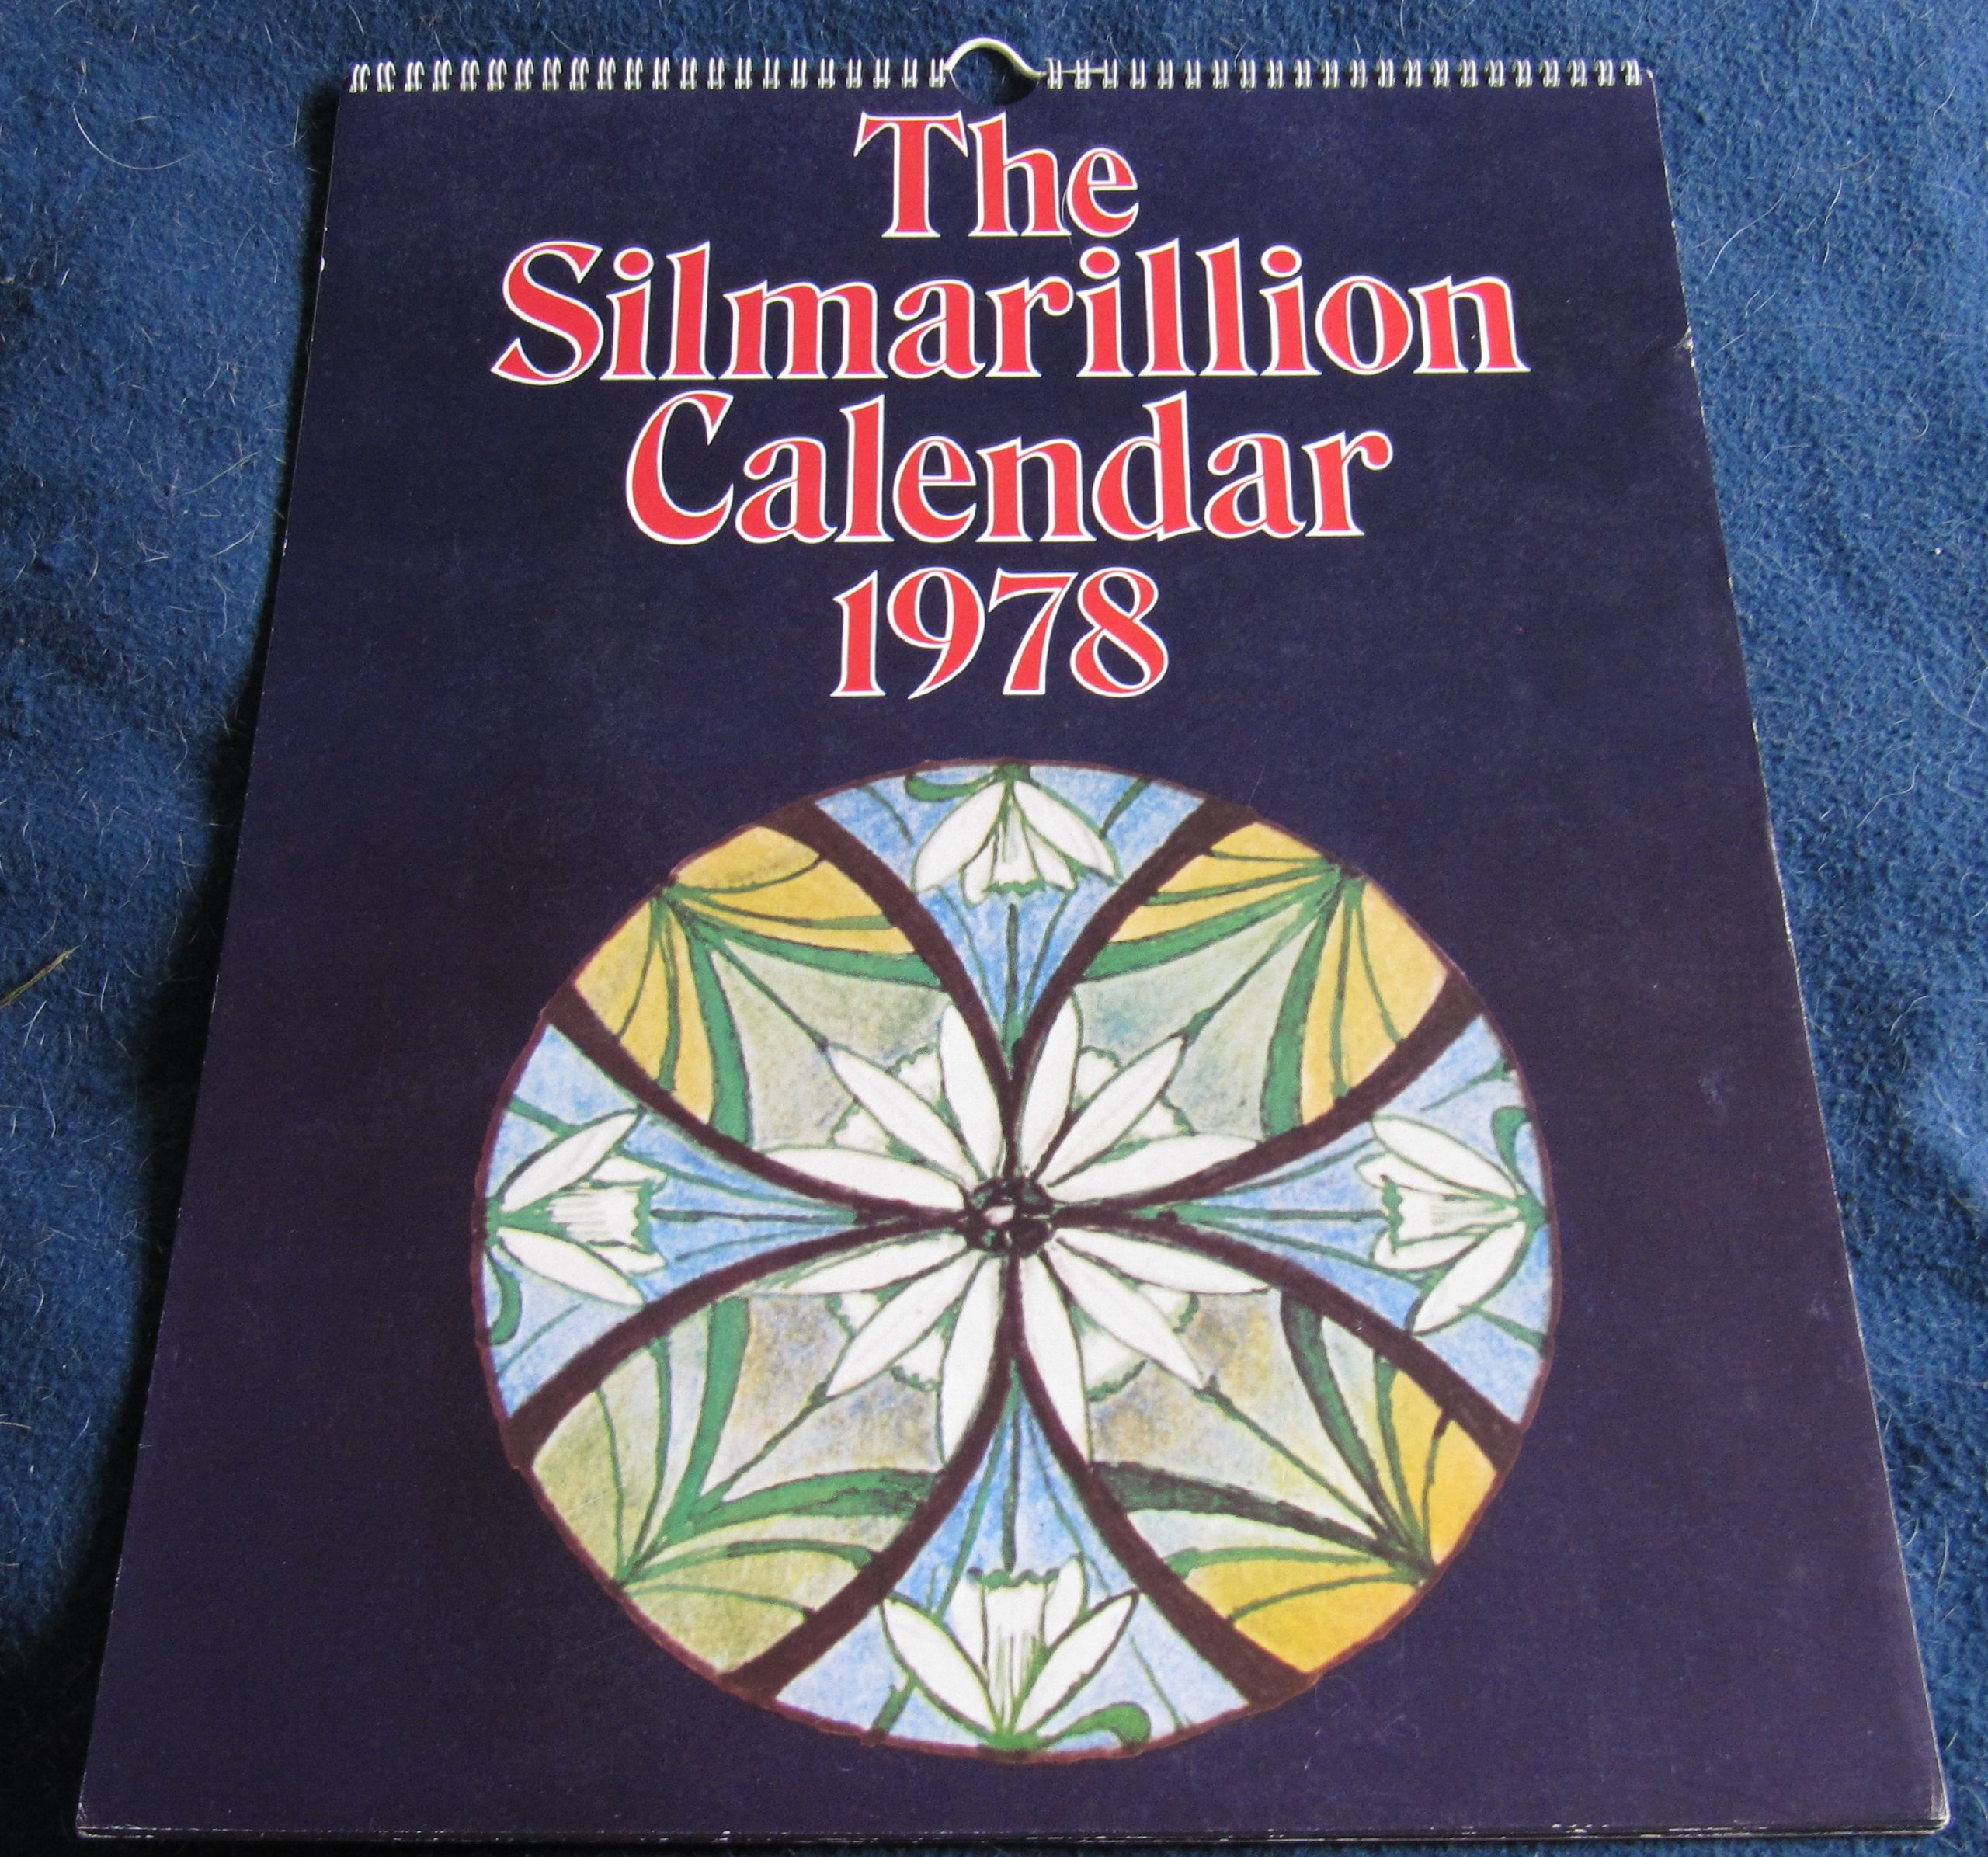 The Silmarillion Calendar 1978, J.R.R. Tolkien